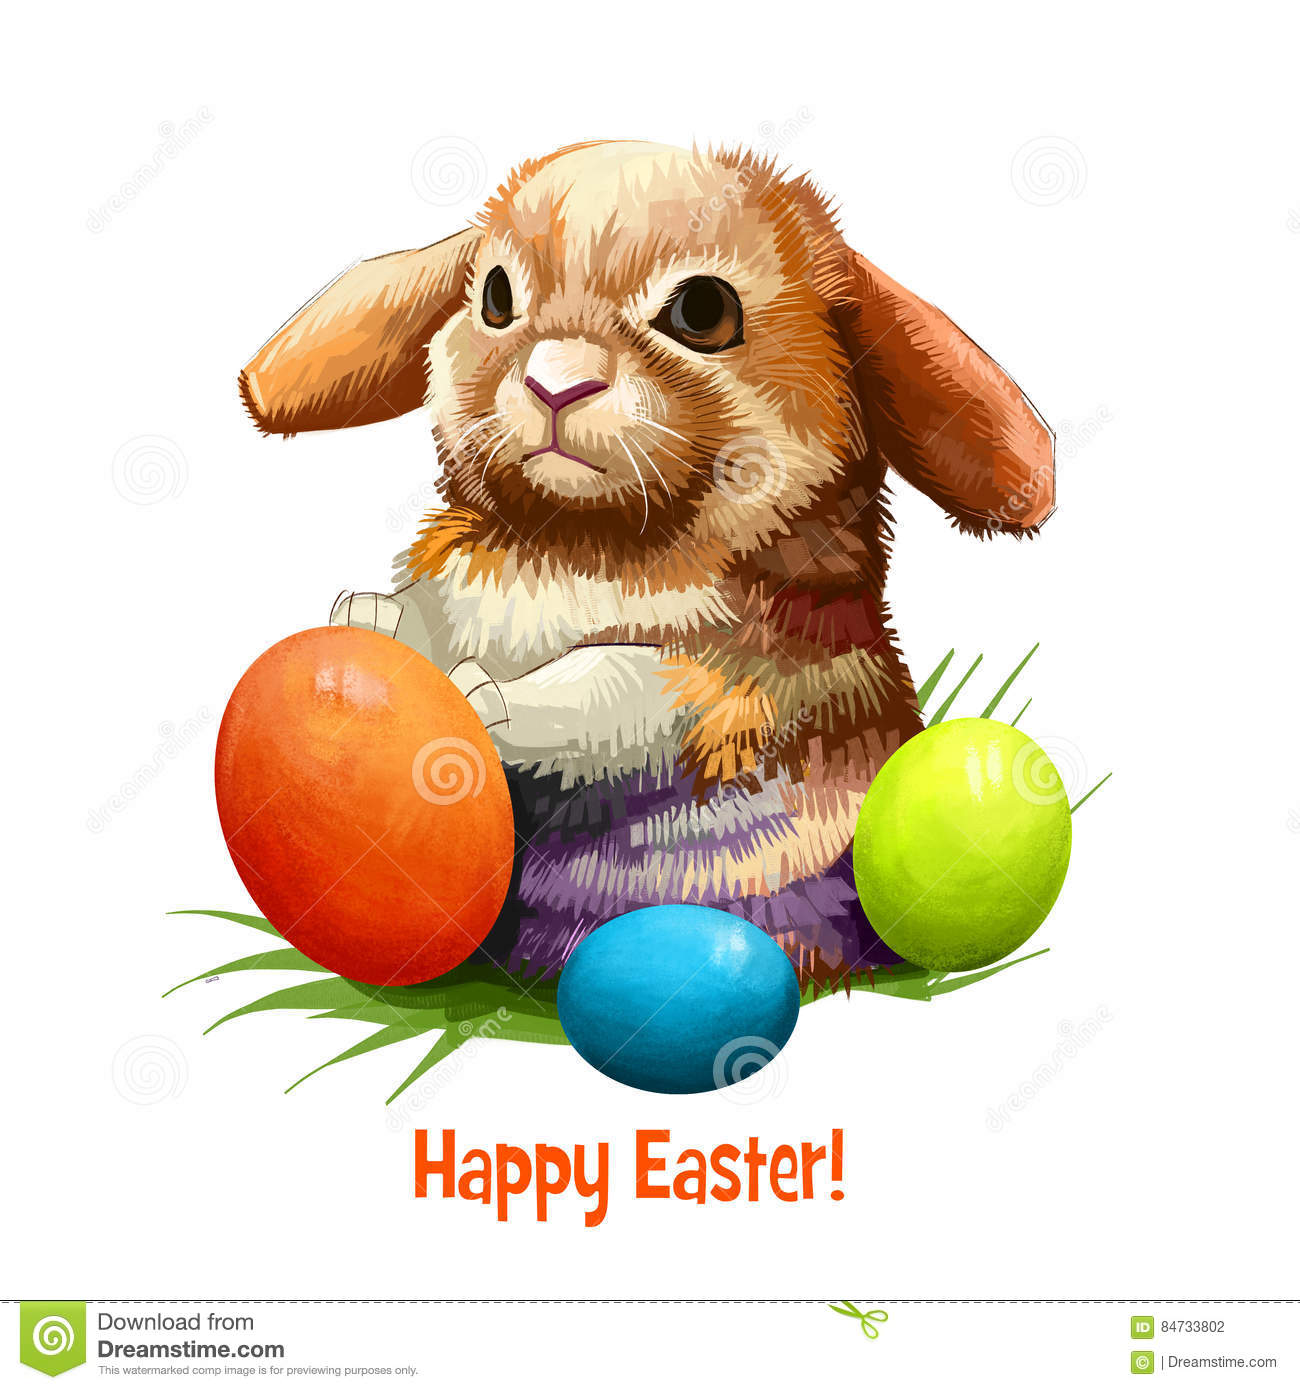 Happy Easter Card Illustration With Bunny Rabbit Vector